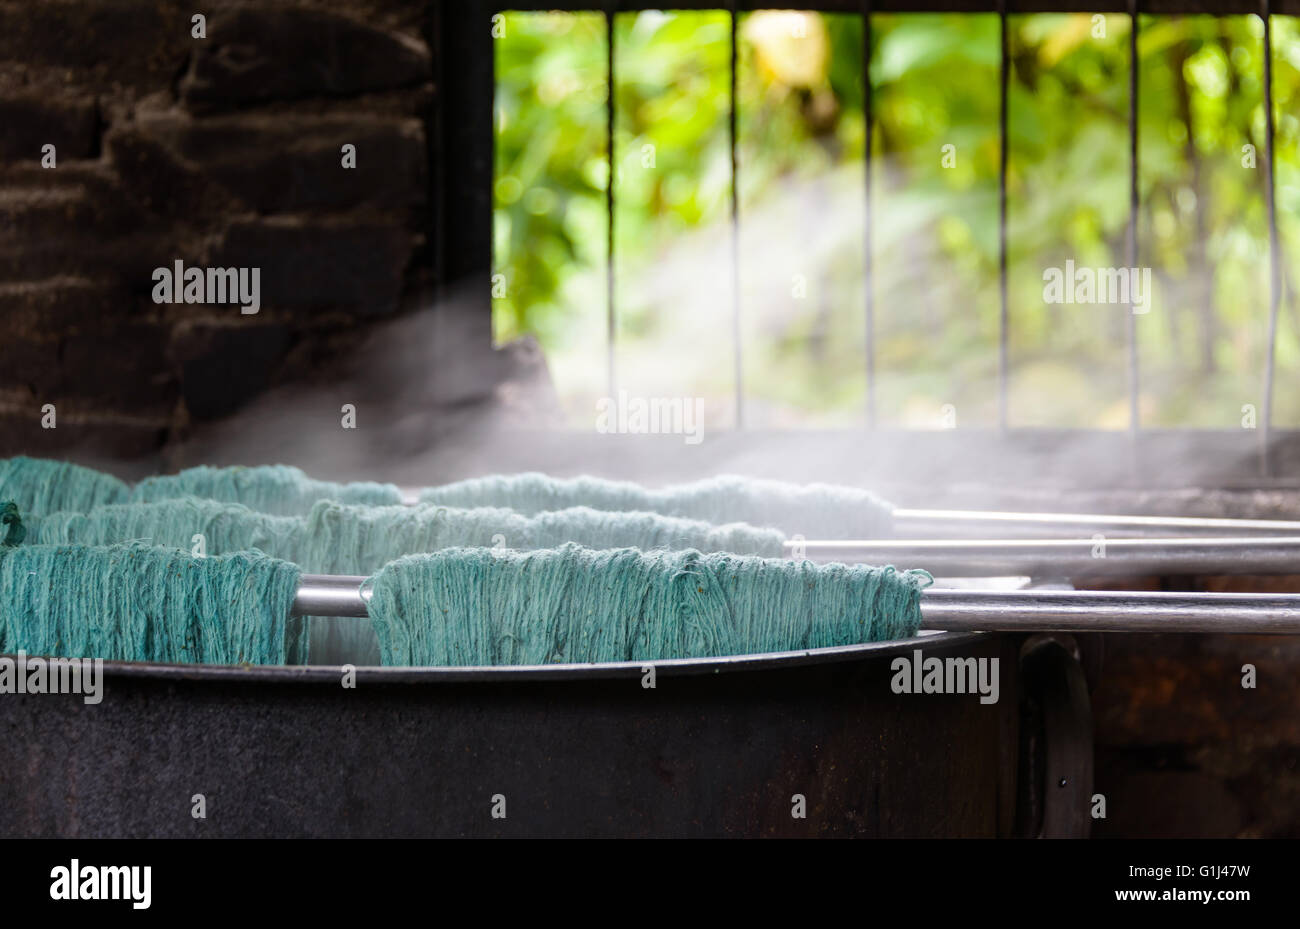 Natural wool dyeing in a carpet factory, Nepal - Stock Image